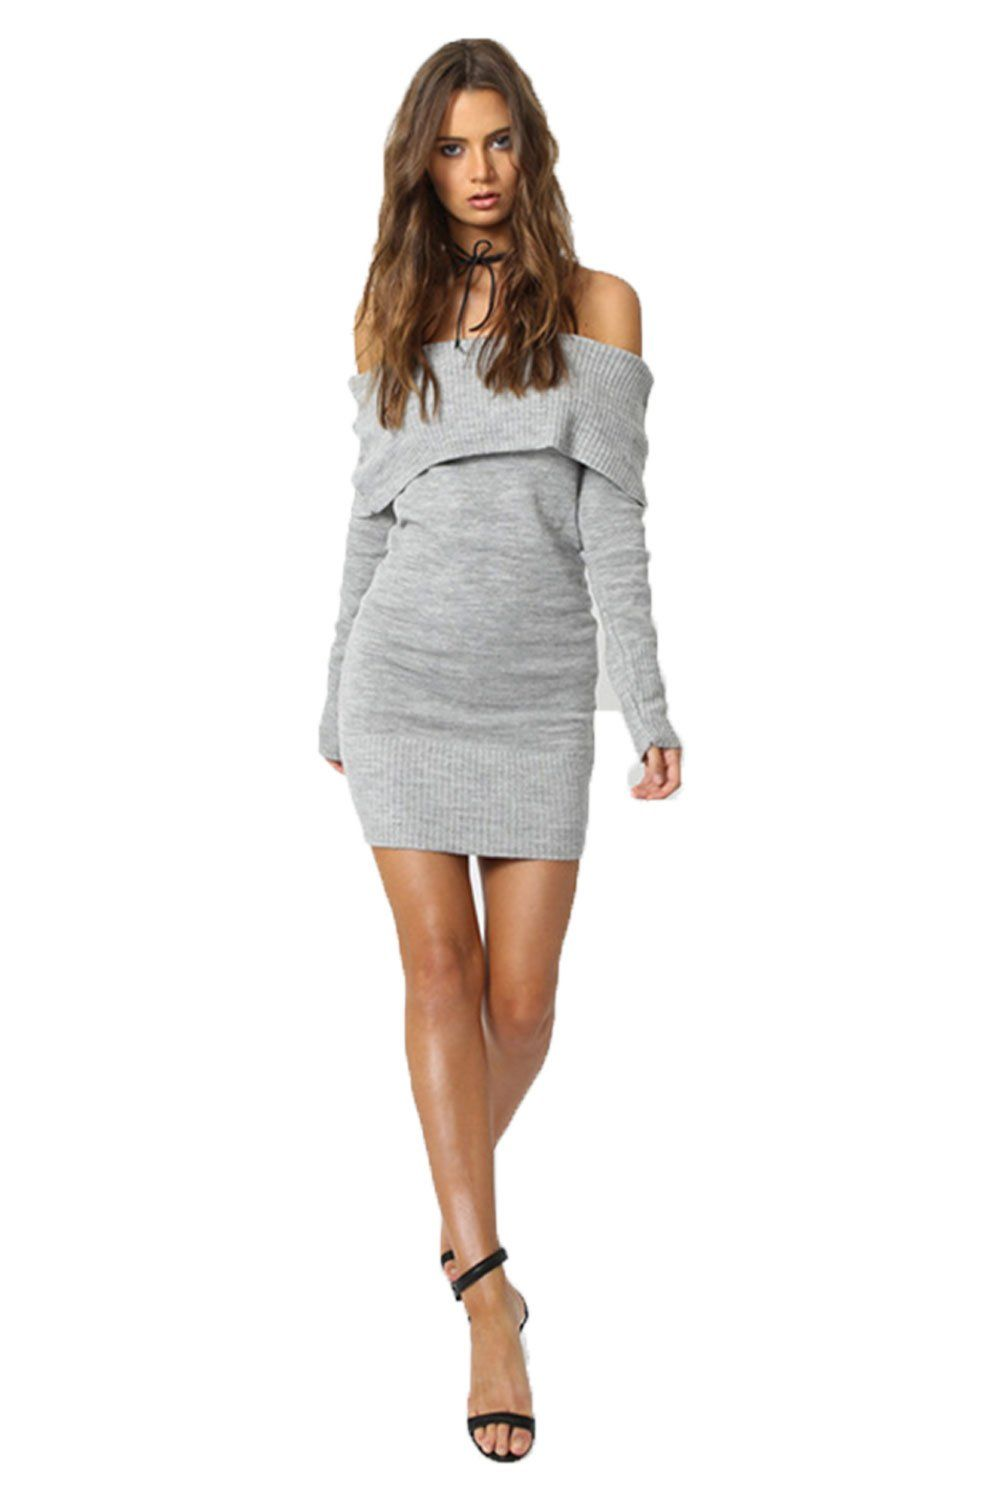 418906dd5f4 ALAIX Womens Sexy Off Shoulder Long Sleeve Pencil Bodycon Knitted Sweater  Mini DressGrey One Size     You can get additional details at the image  link.